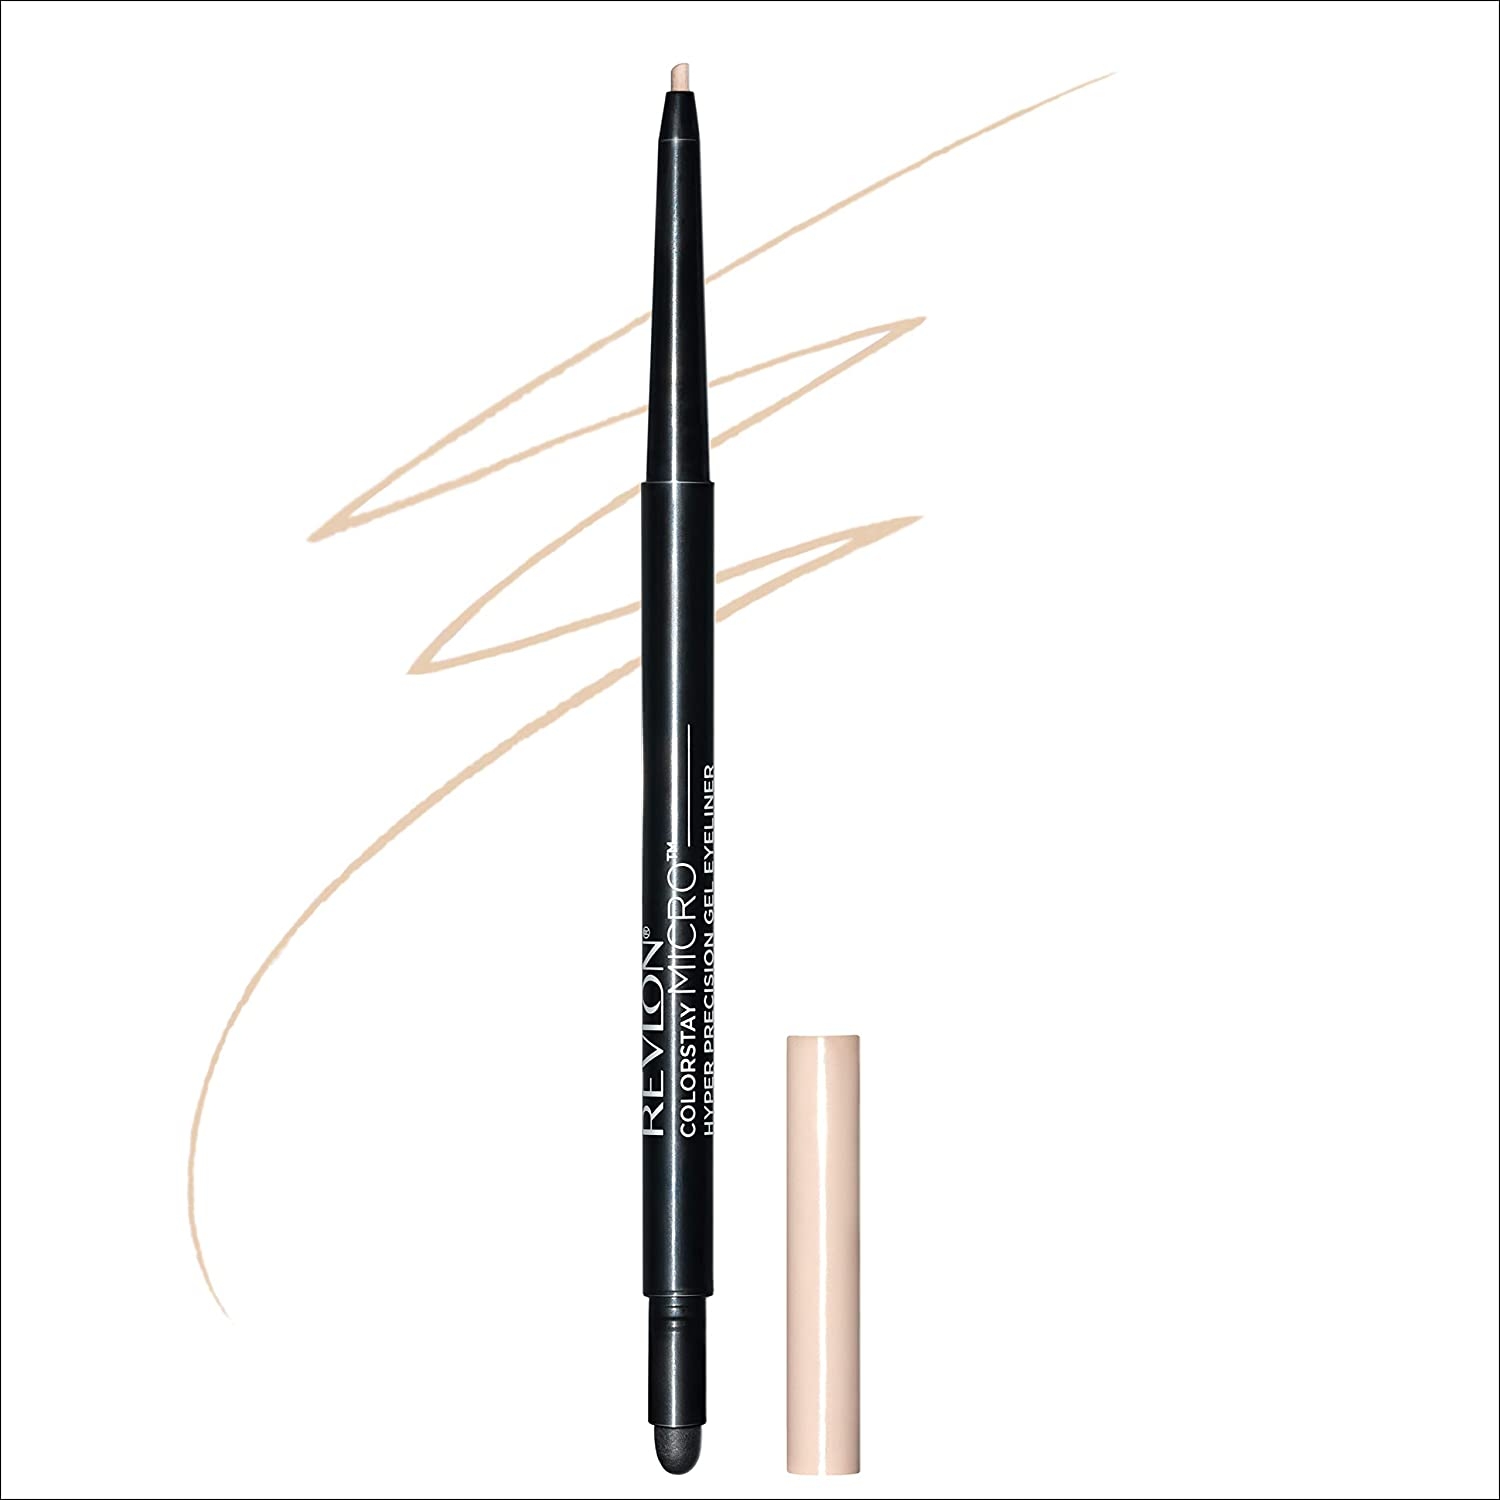 Revlon Colorstay Micro hyper Precision Gel Eyeliner, Waterproof, Long wearing, 0.009 oz, beige